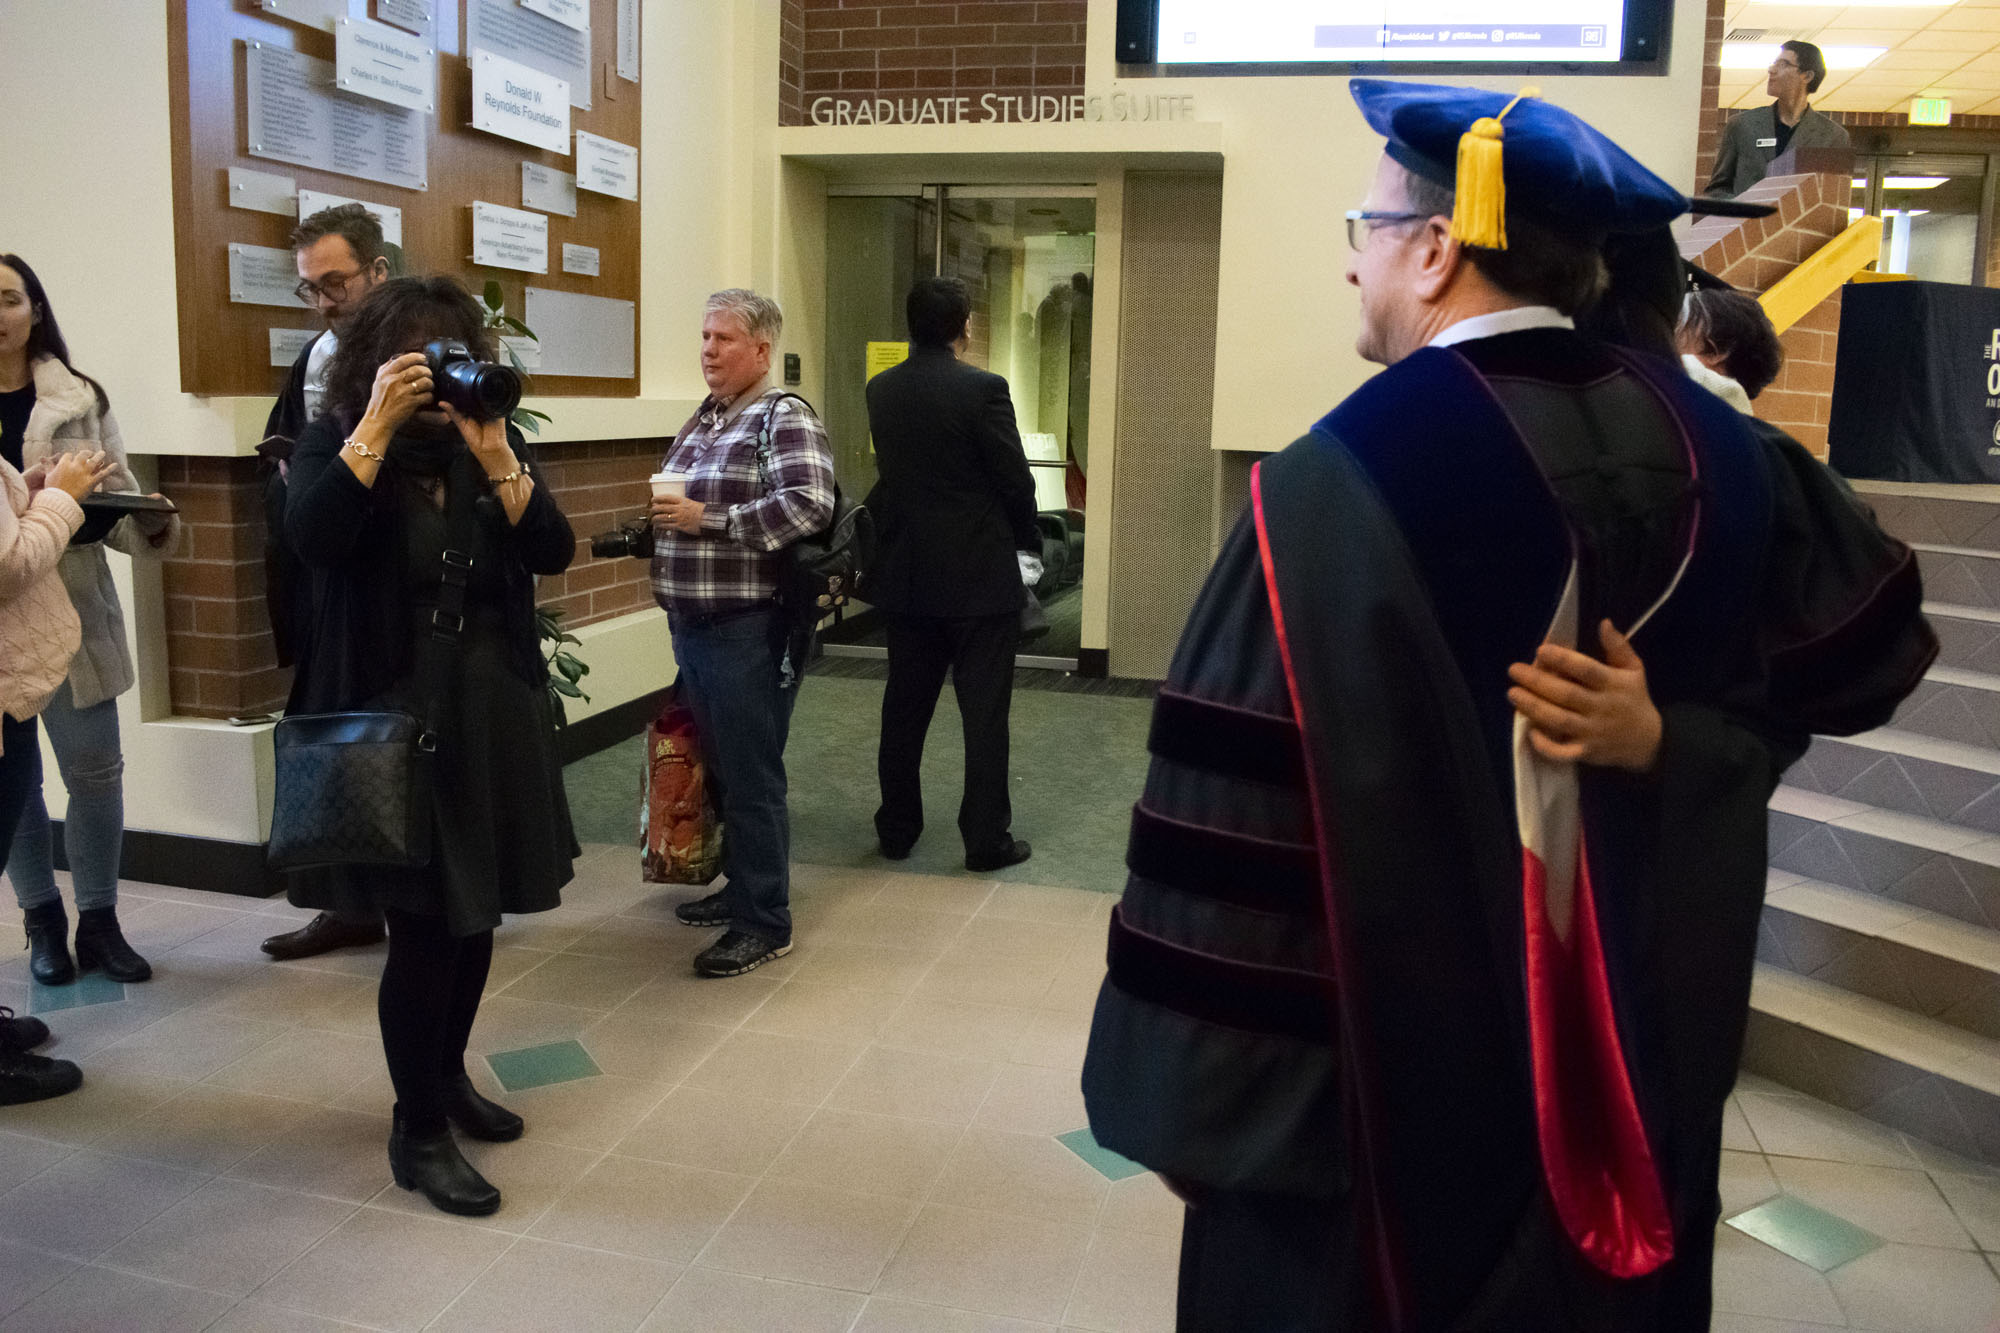 A woman takes a photo of a man and a woman in graduation robes.